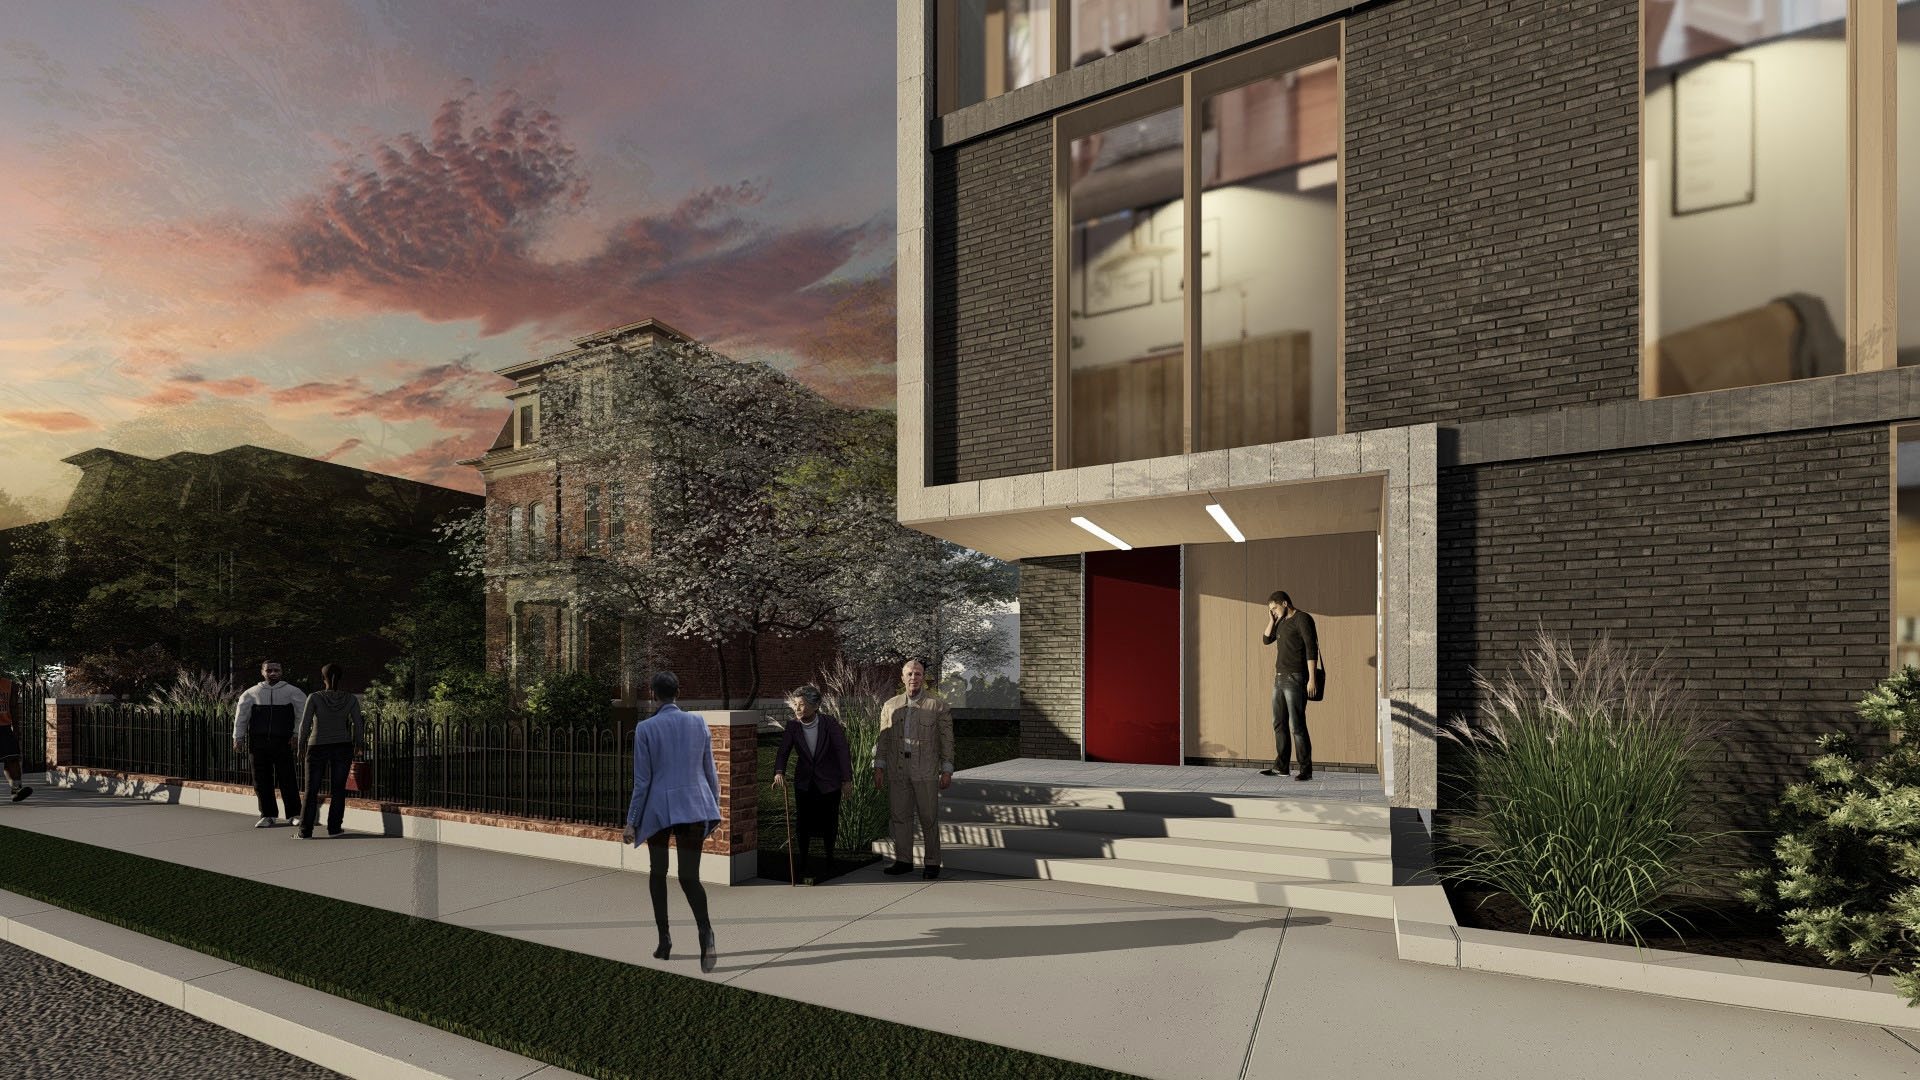 105 ALFRED TOWNHOMES - OOMBRA ARCHITECTS ©